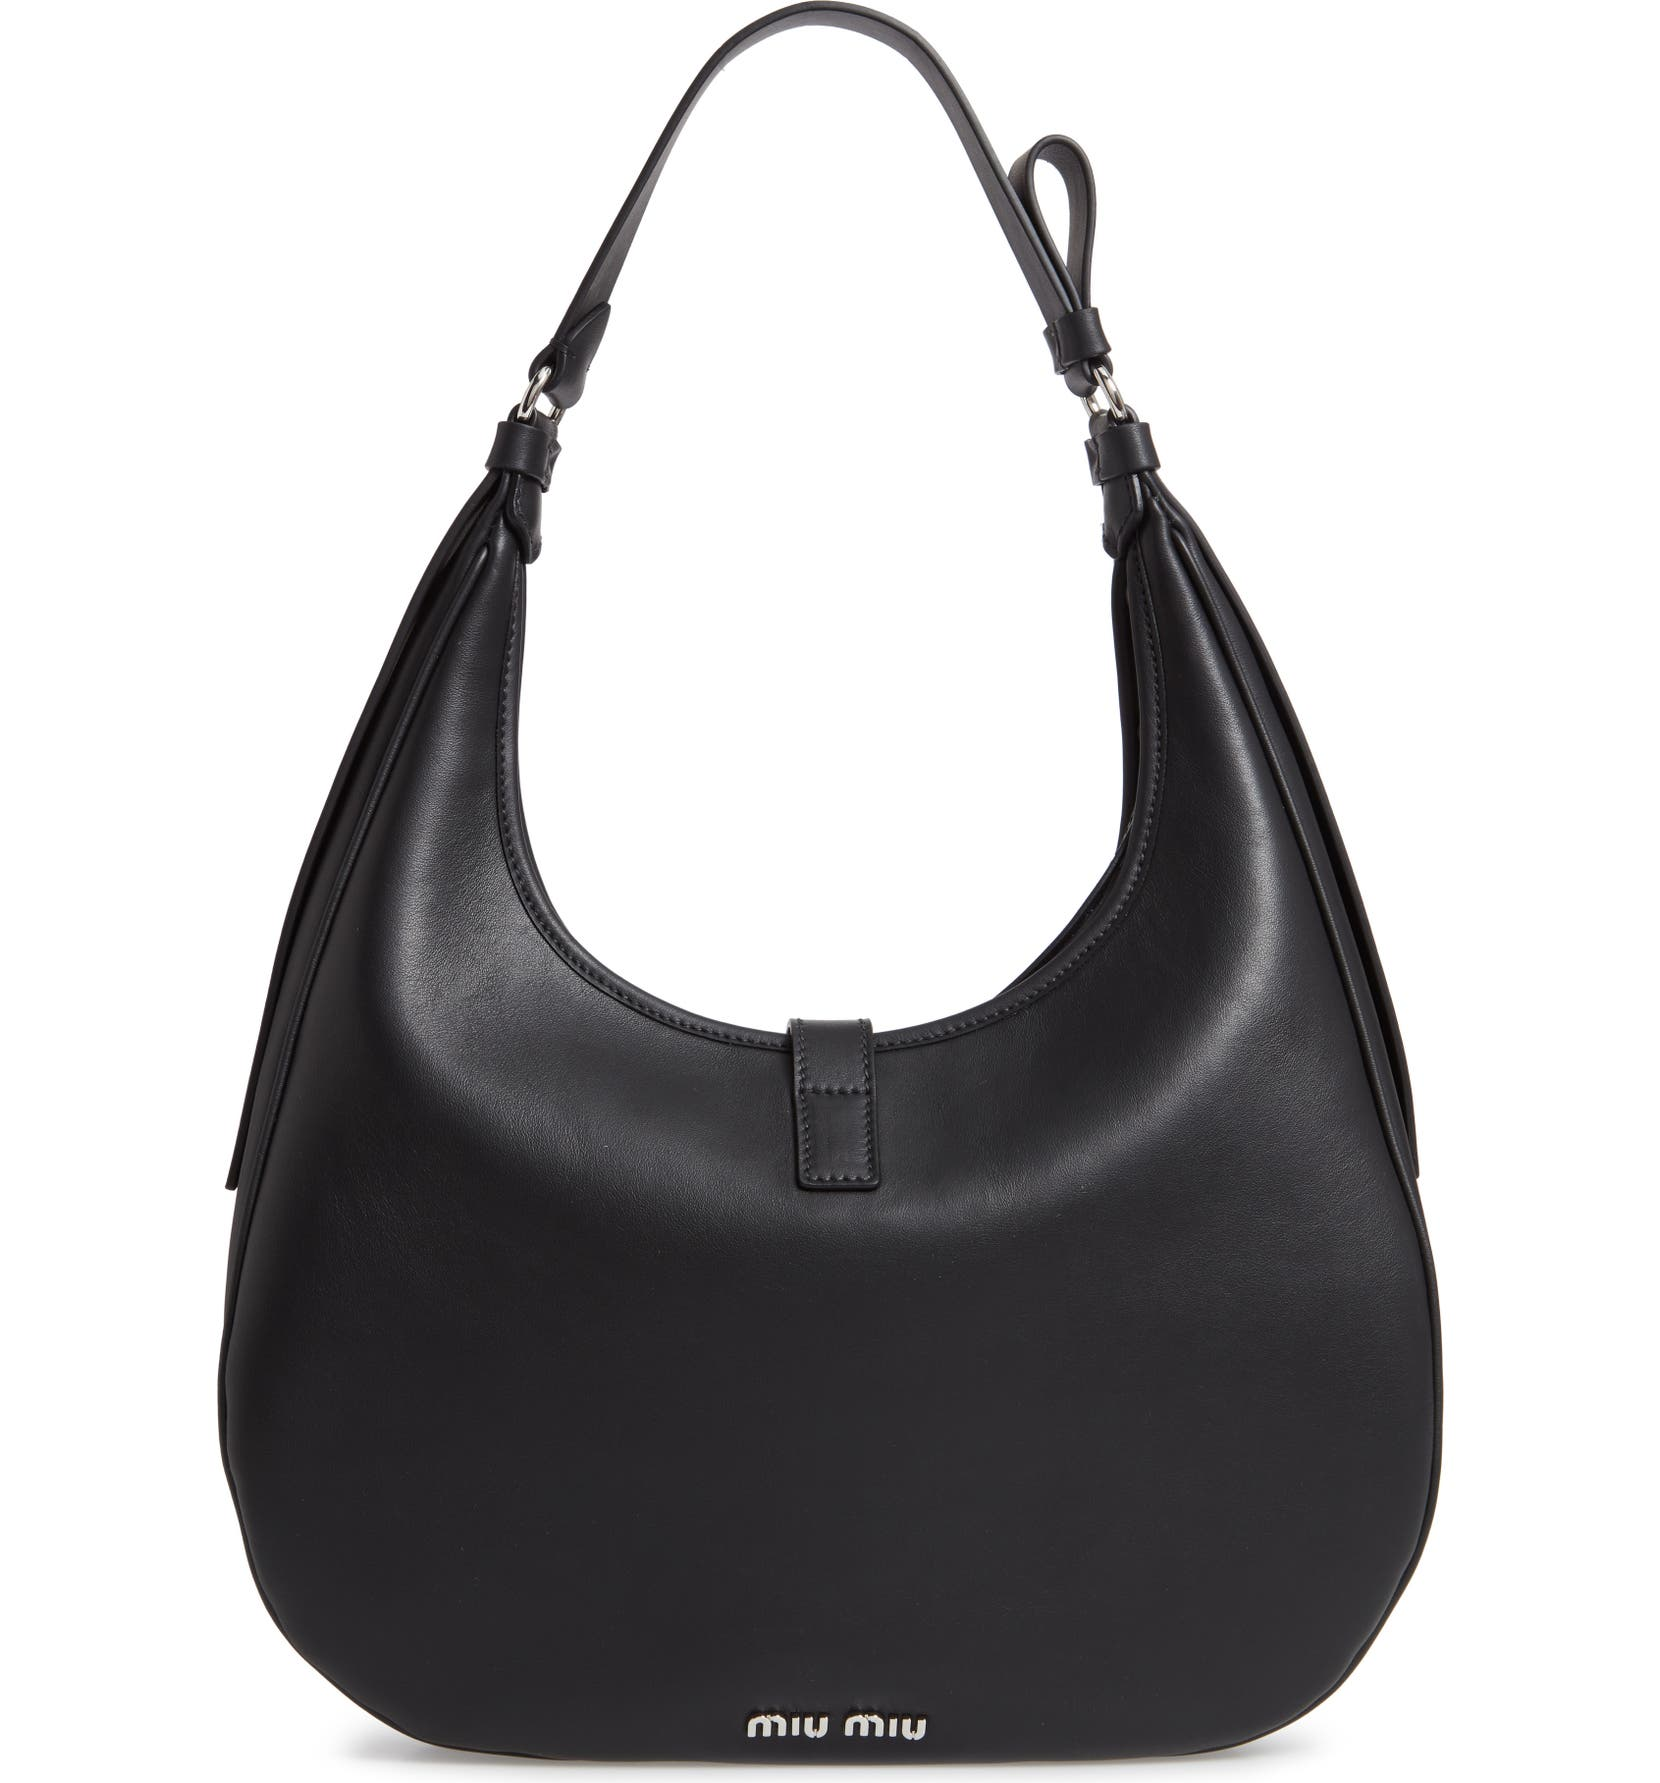 Miu Miu Medium Grace Lux Calfskin Leather Hobo  7a291b5f89ba9